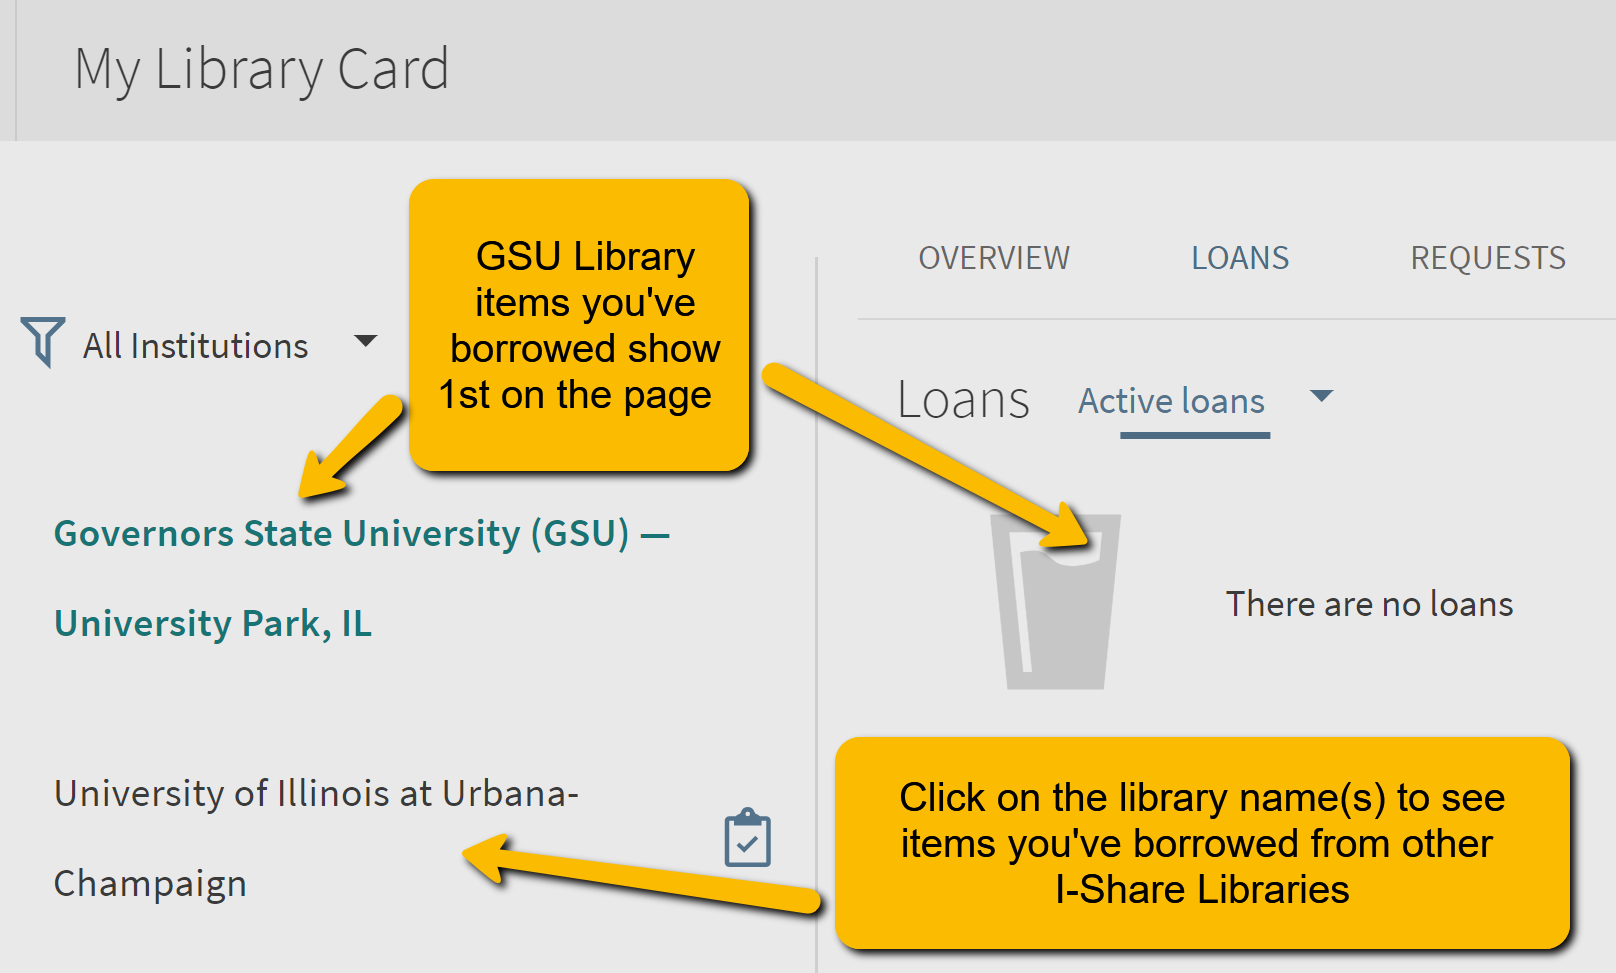 Click the I-Share library name